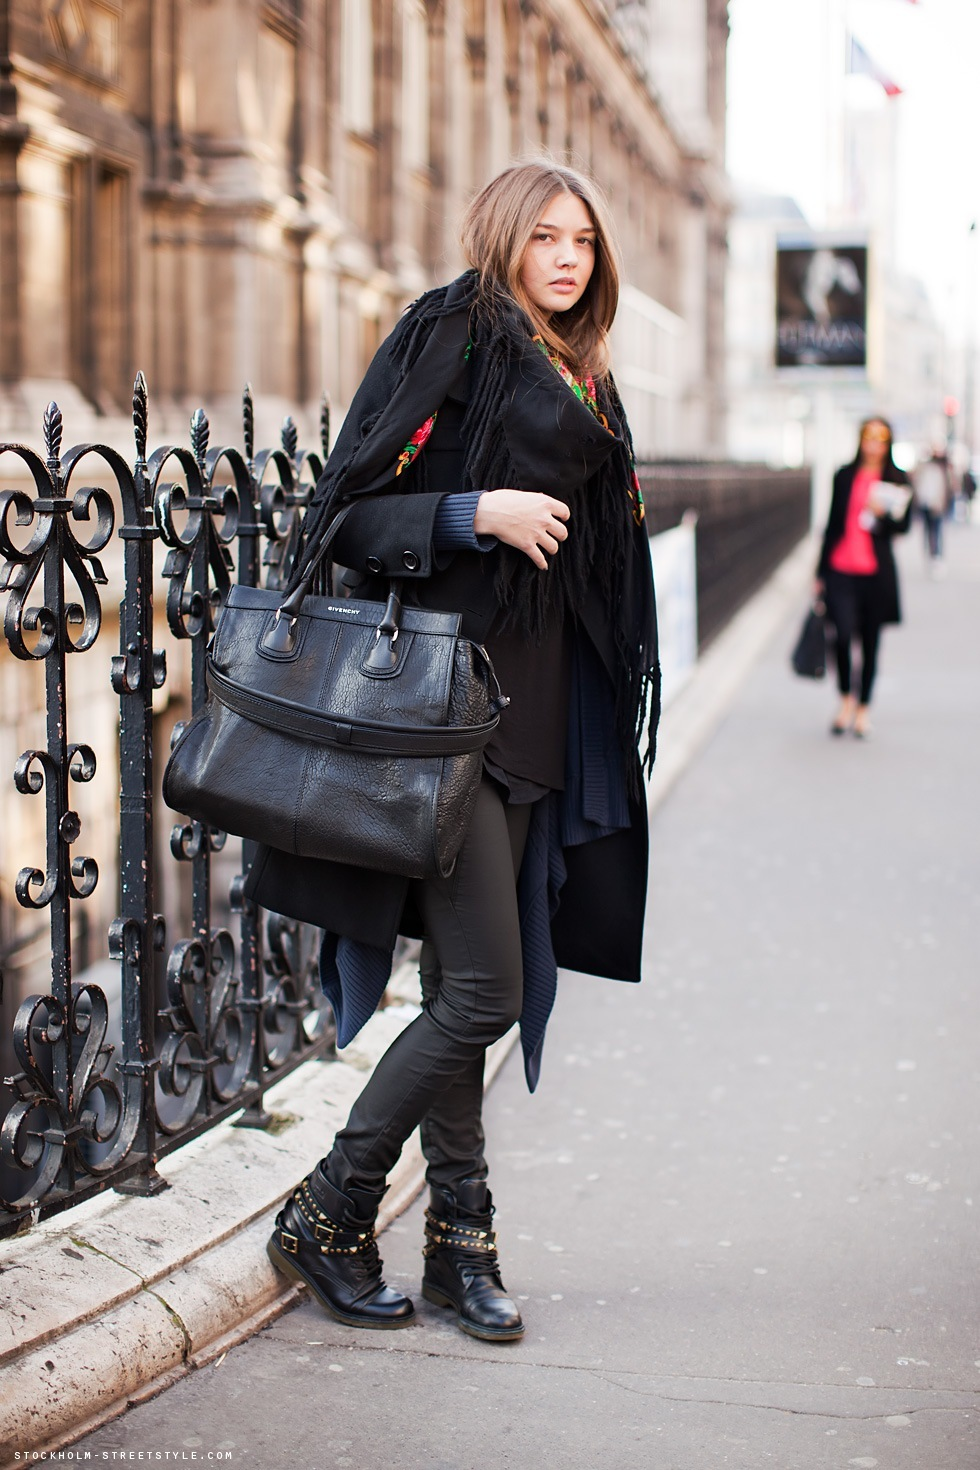 bag, black, boots, coat, cool